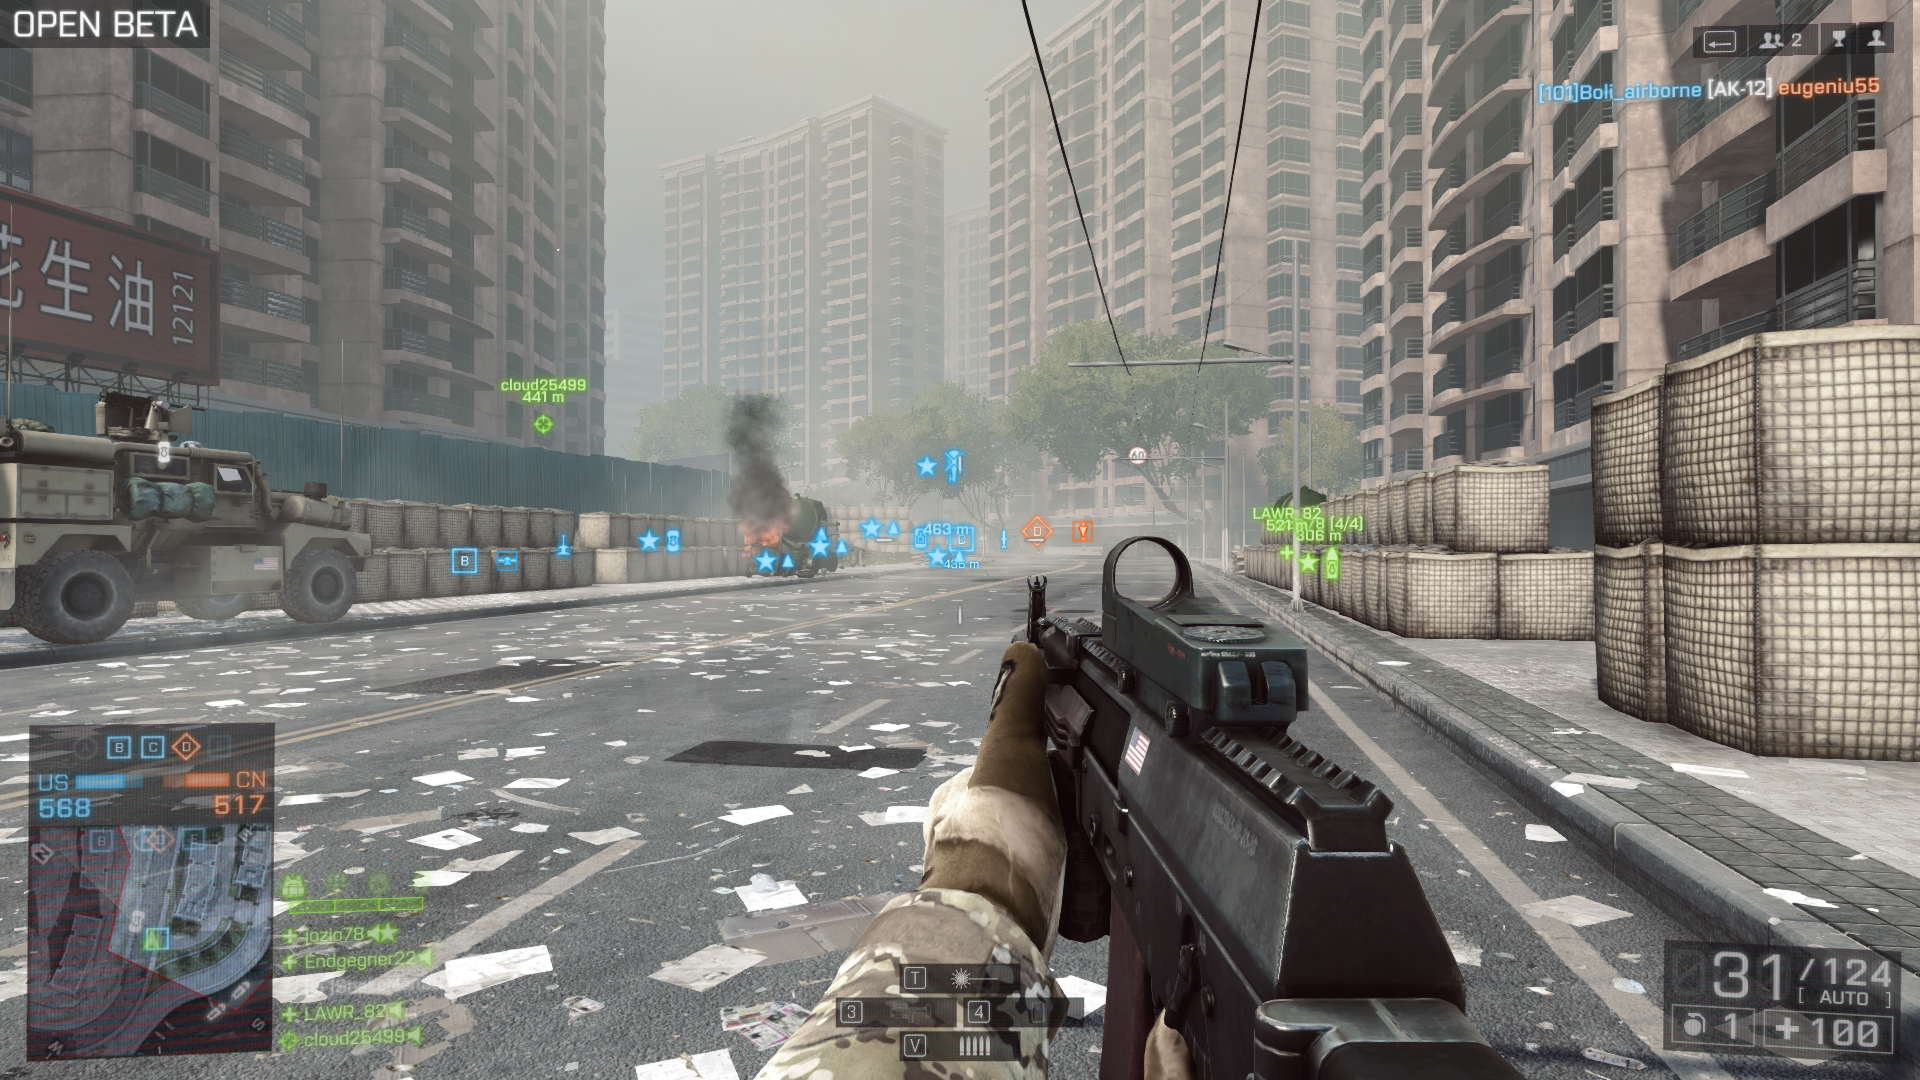 http://endgegner.fightercom.de/BF4_Screenshot/Battlefield4OpenBeta04.png